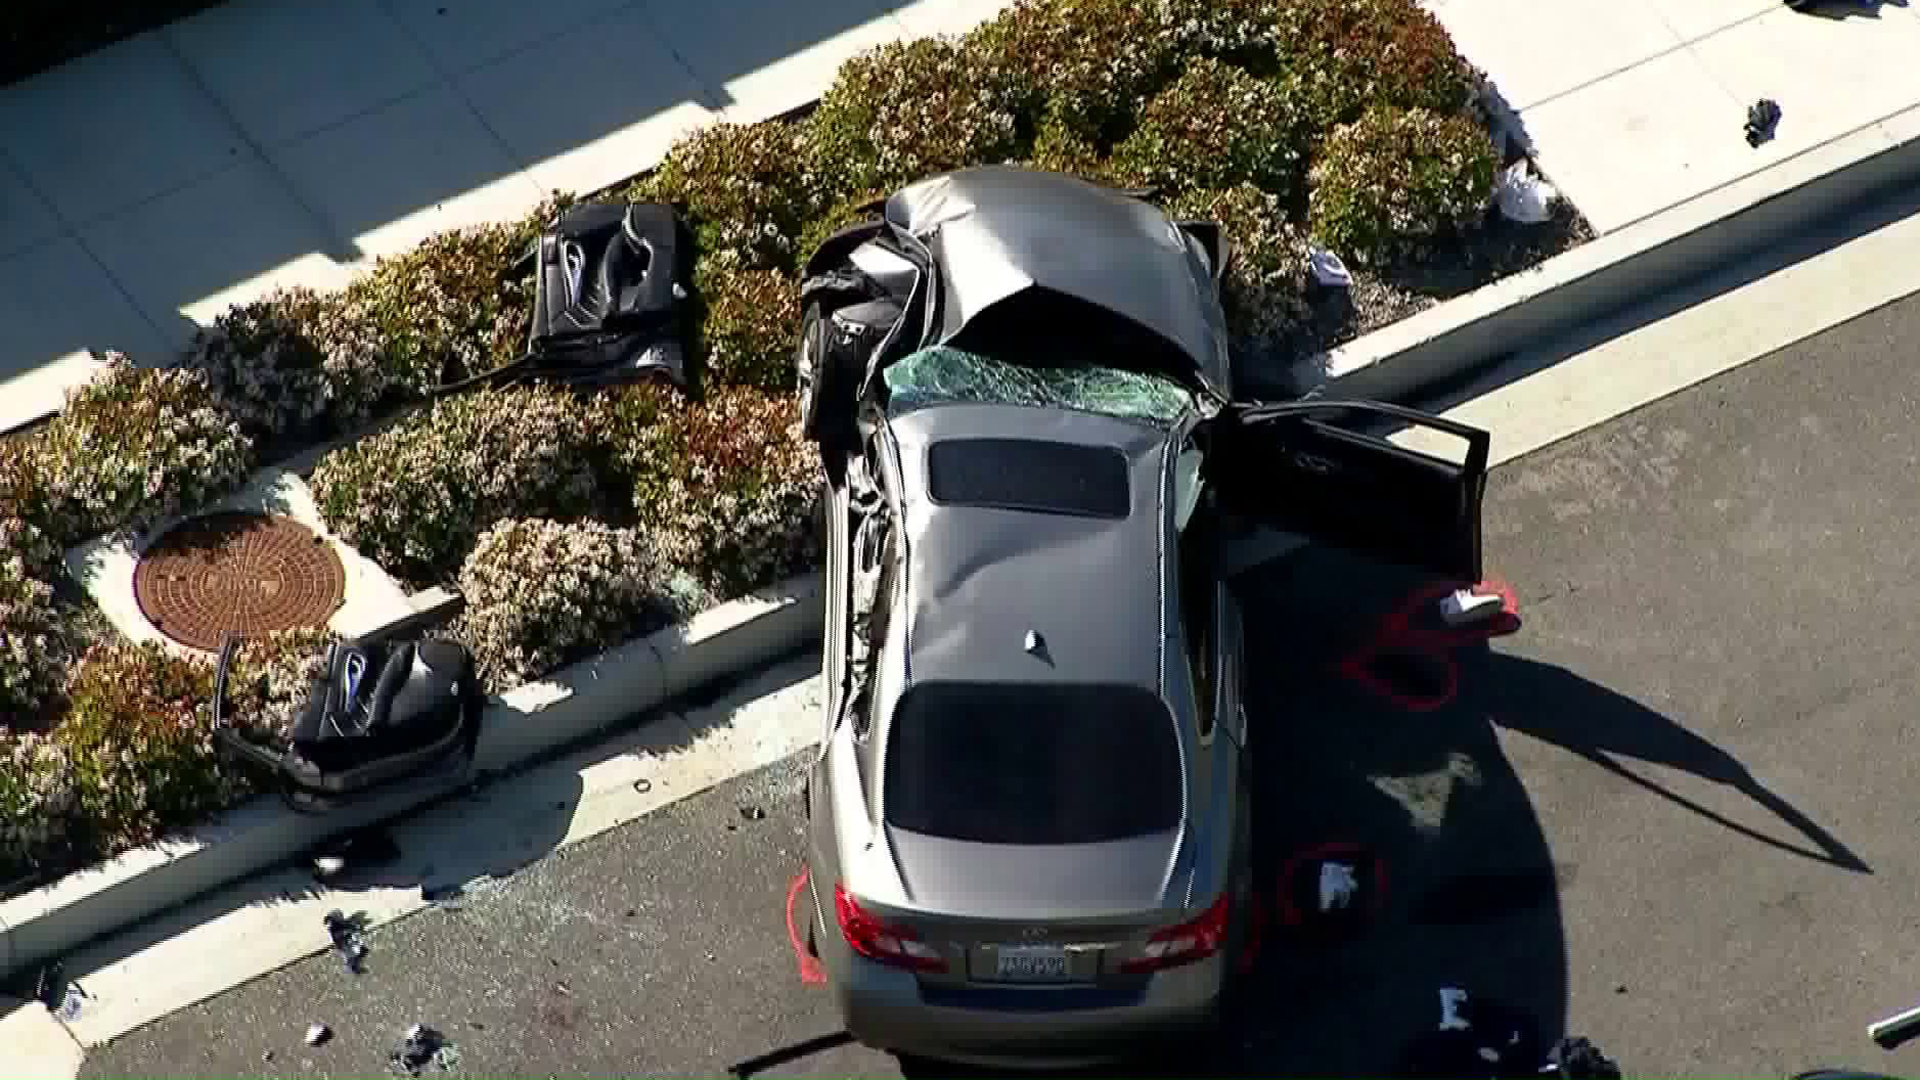 A car involved in a fatal crash in Tustin is shown on March 23, 2018. (Credit: KTLA)